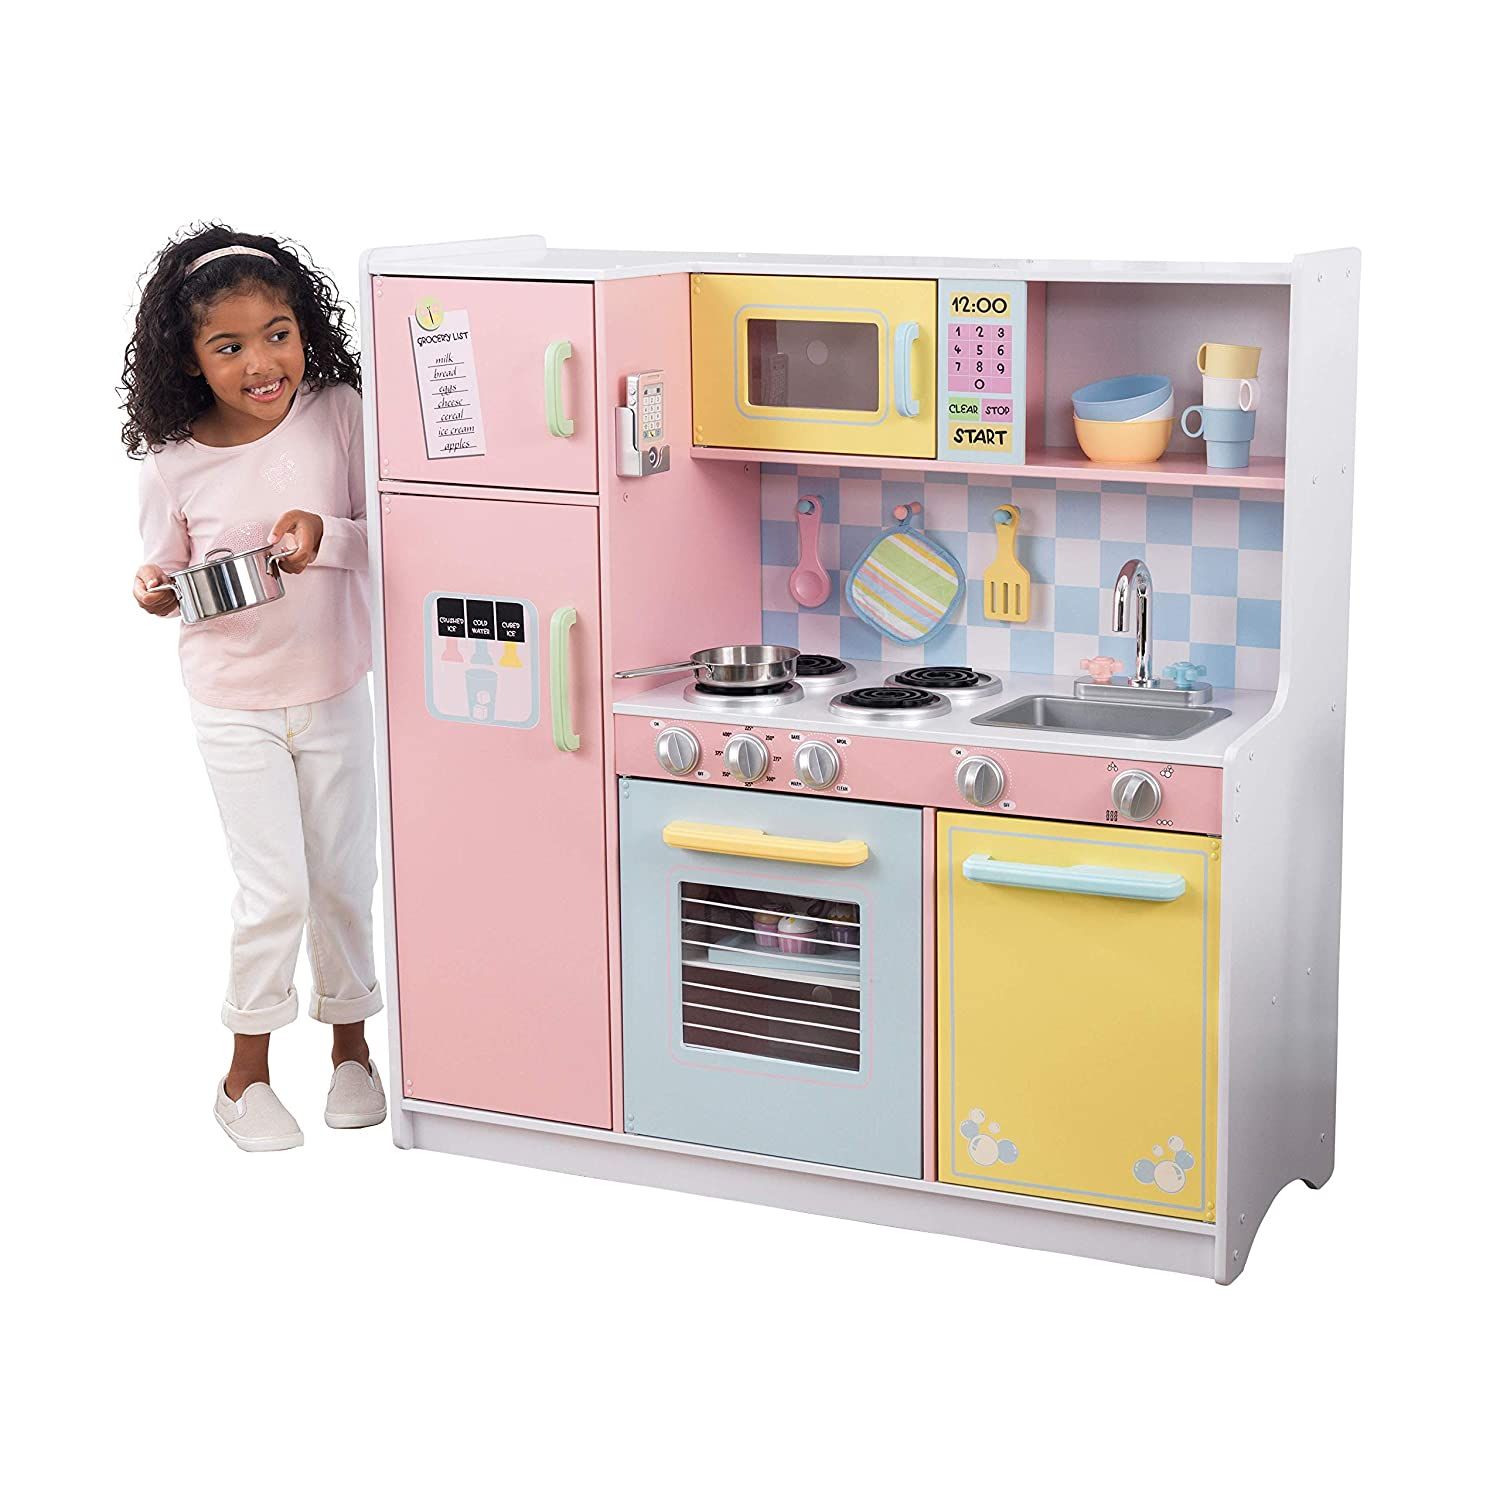 Buy KidKraft Large Kitchen Online at Low Prices in India - Amazon.in